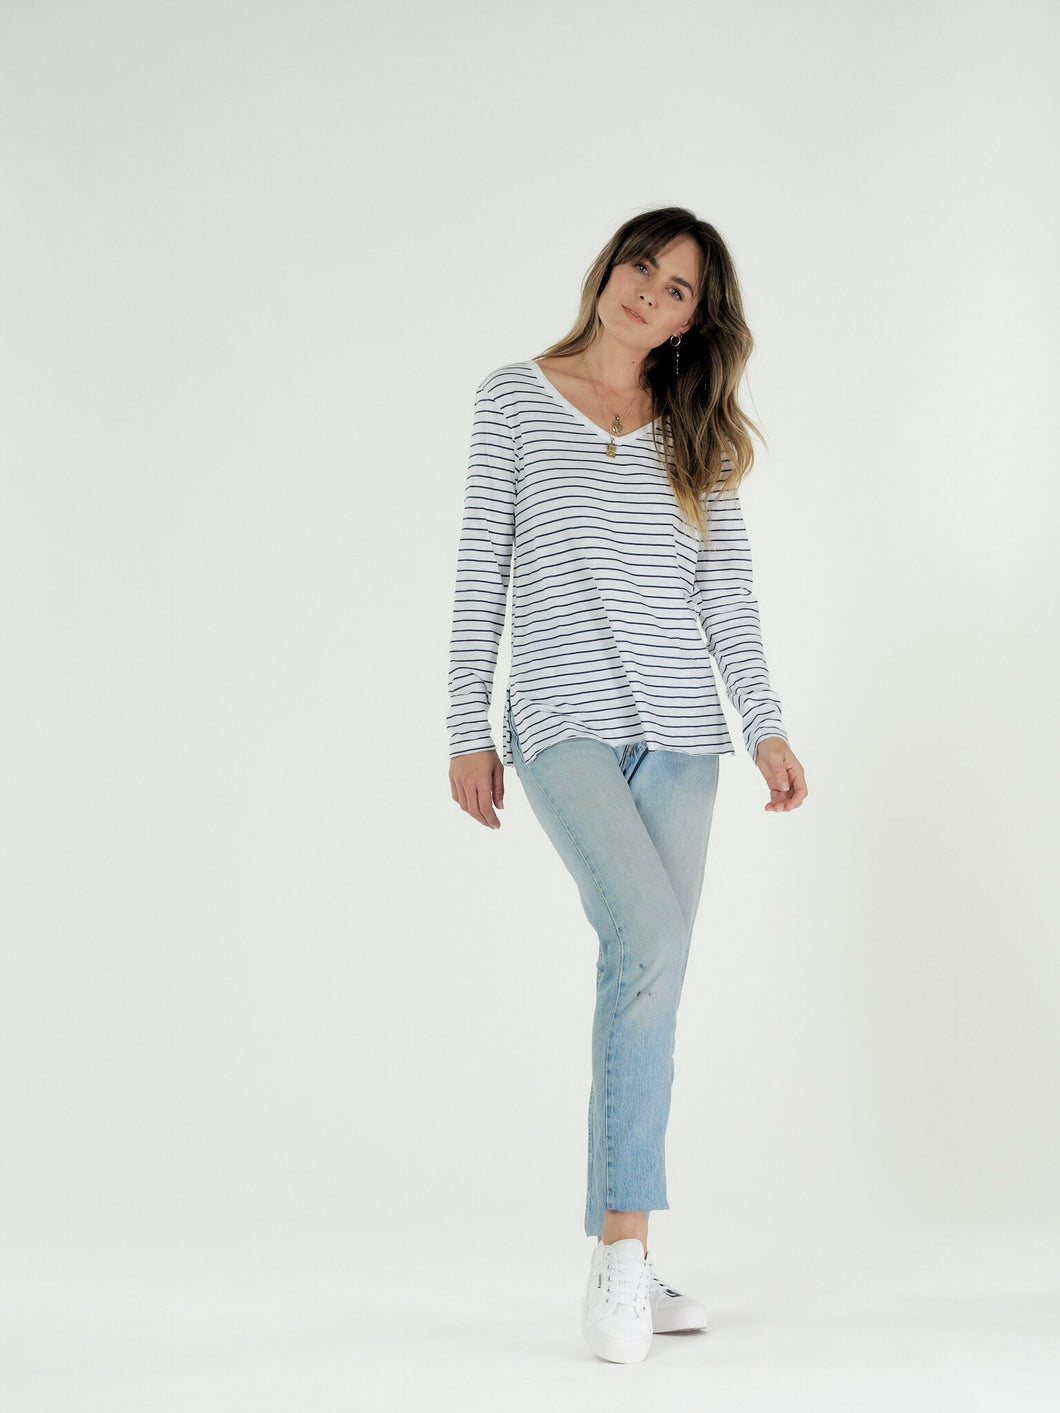 Cle' Organic Cotton Abigail Long Sleeve Tee - White/Indigo Stripe (PRE-ORDER)